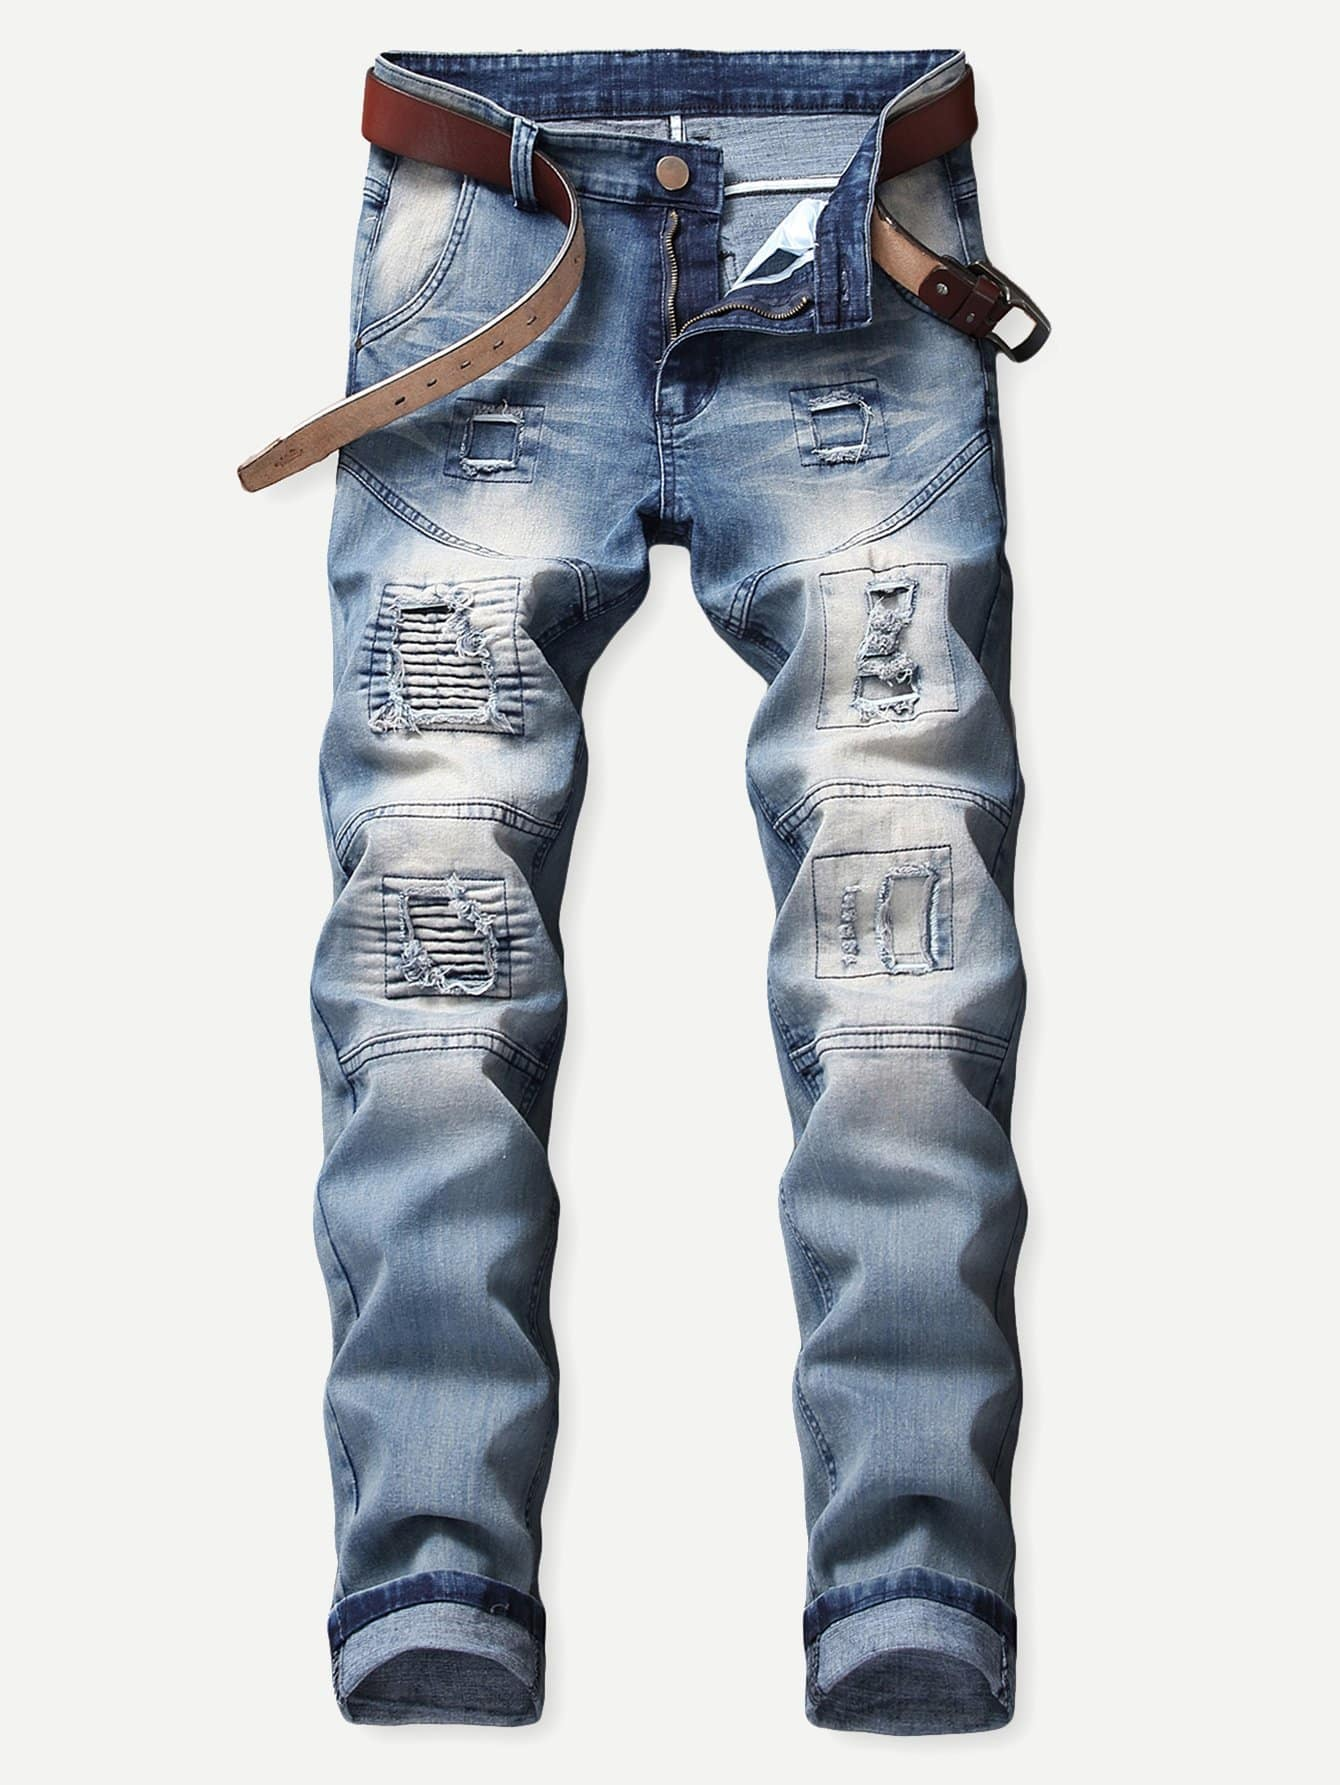 Men Patch & Shirred Detail Jeans Men Patch & Shirred Detail Jeans